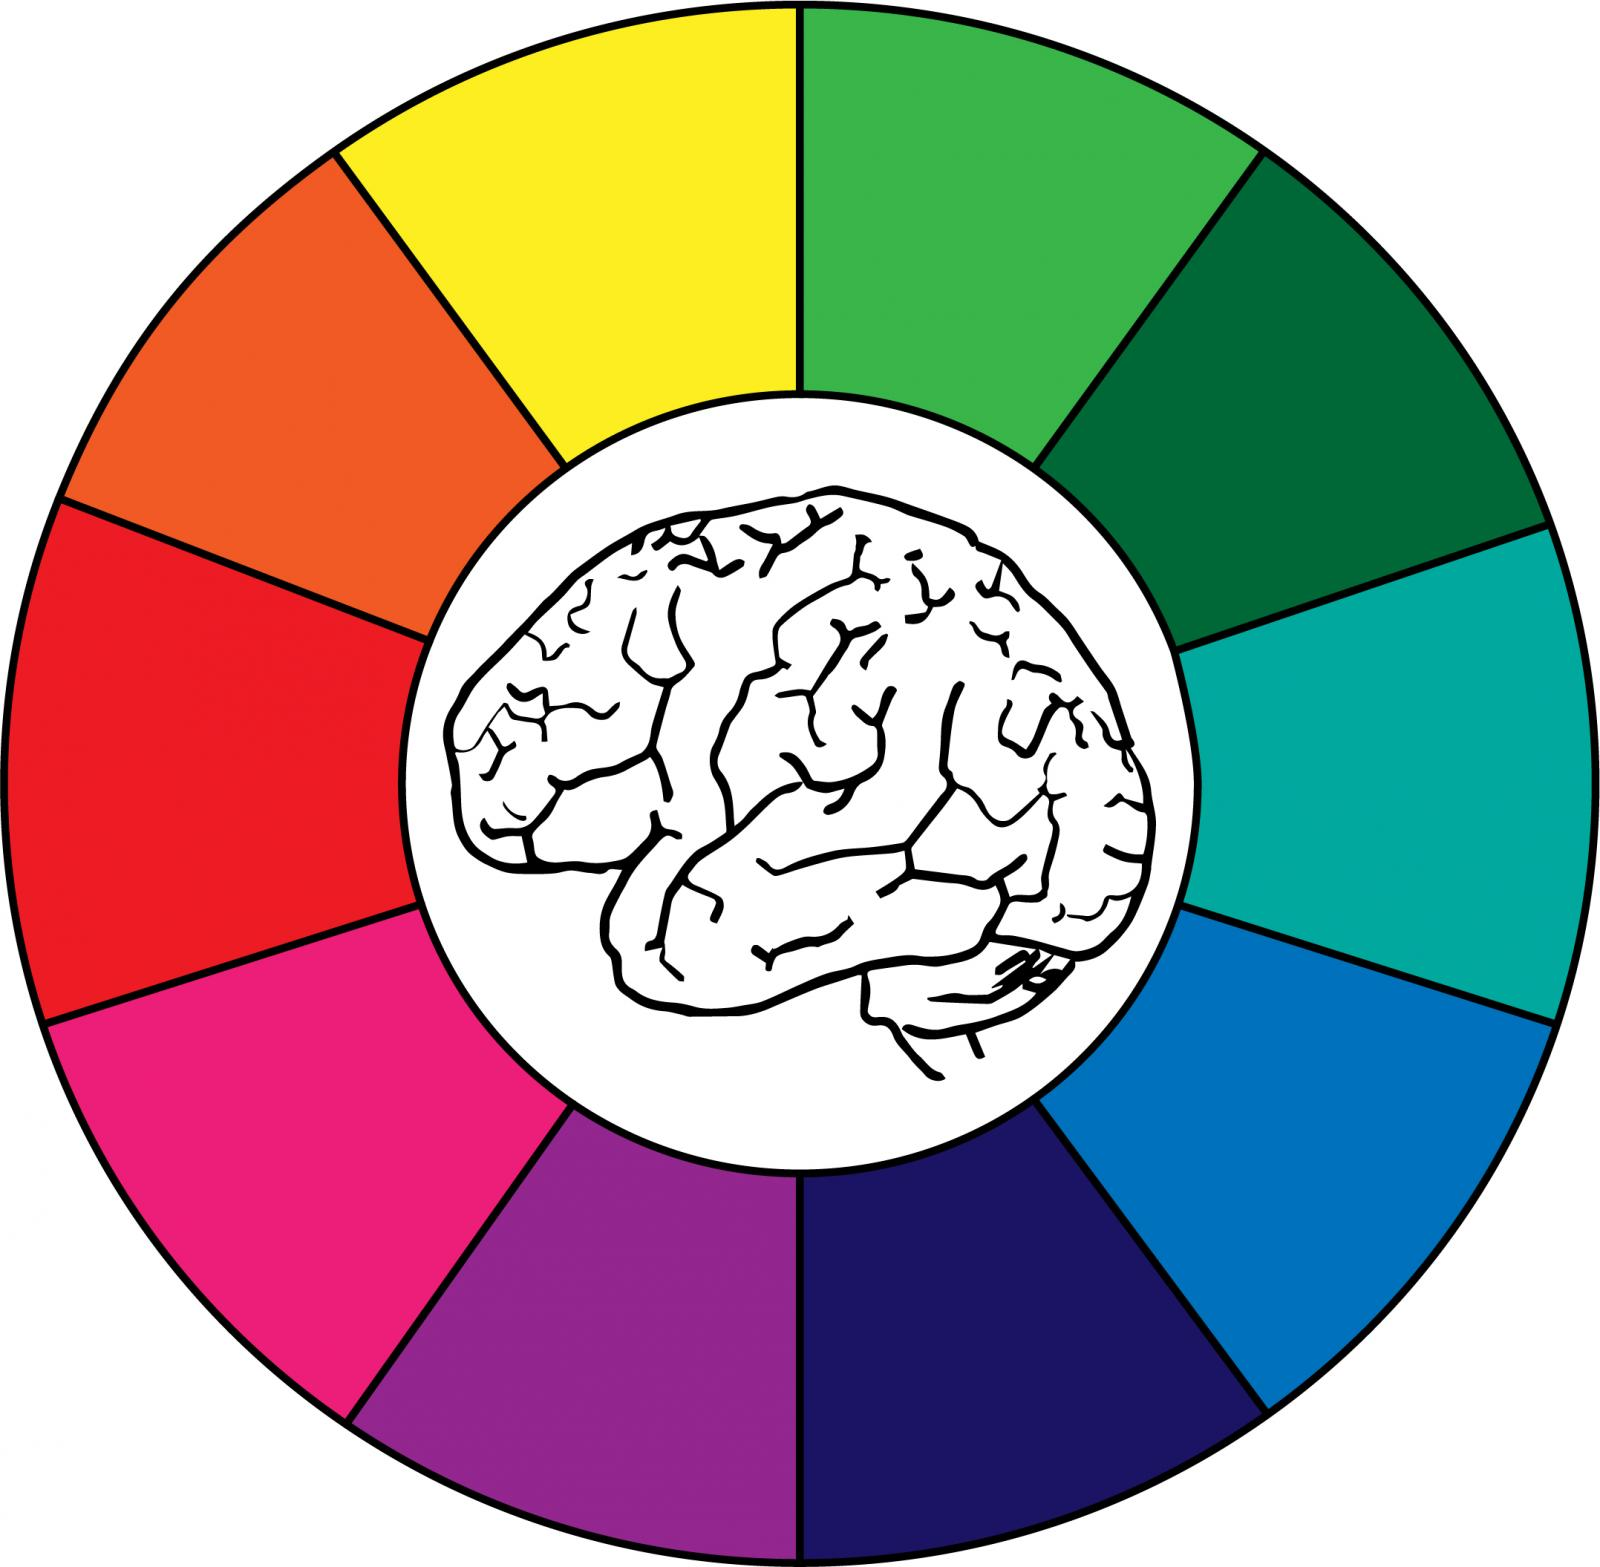 Drawing of brain inside a color wheel